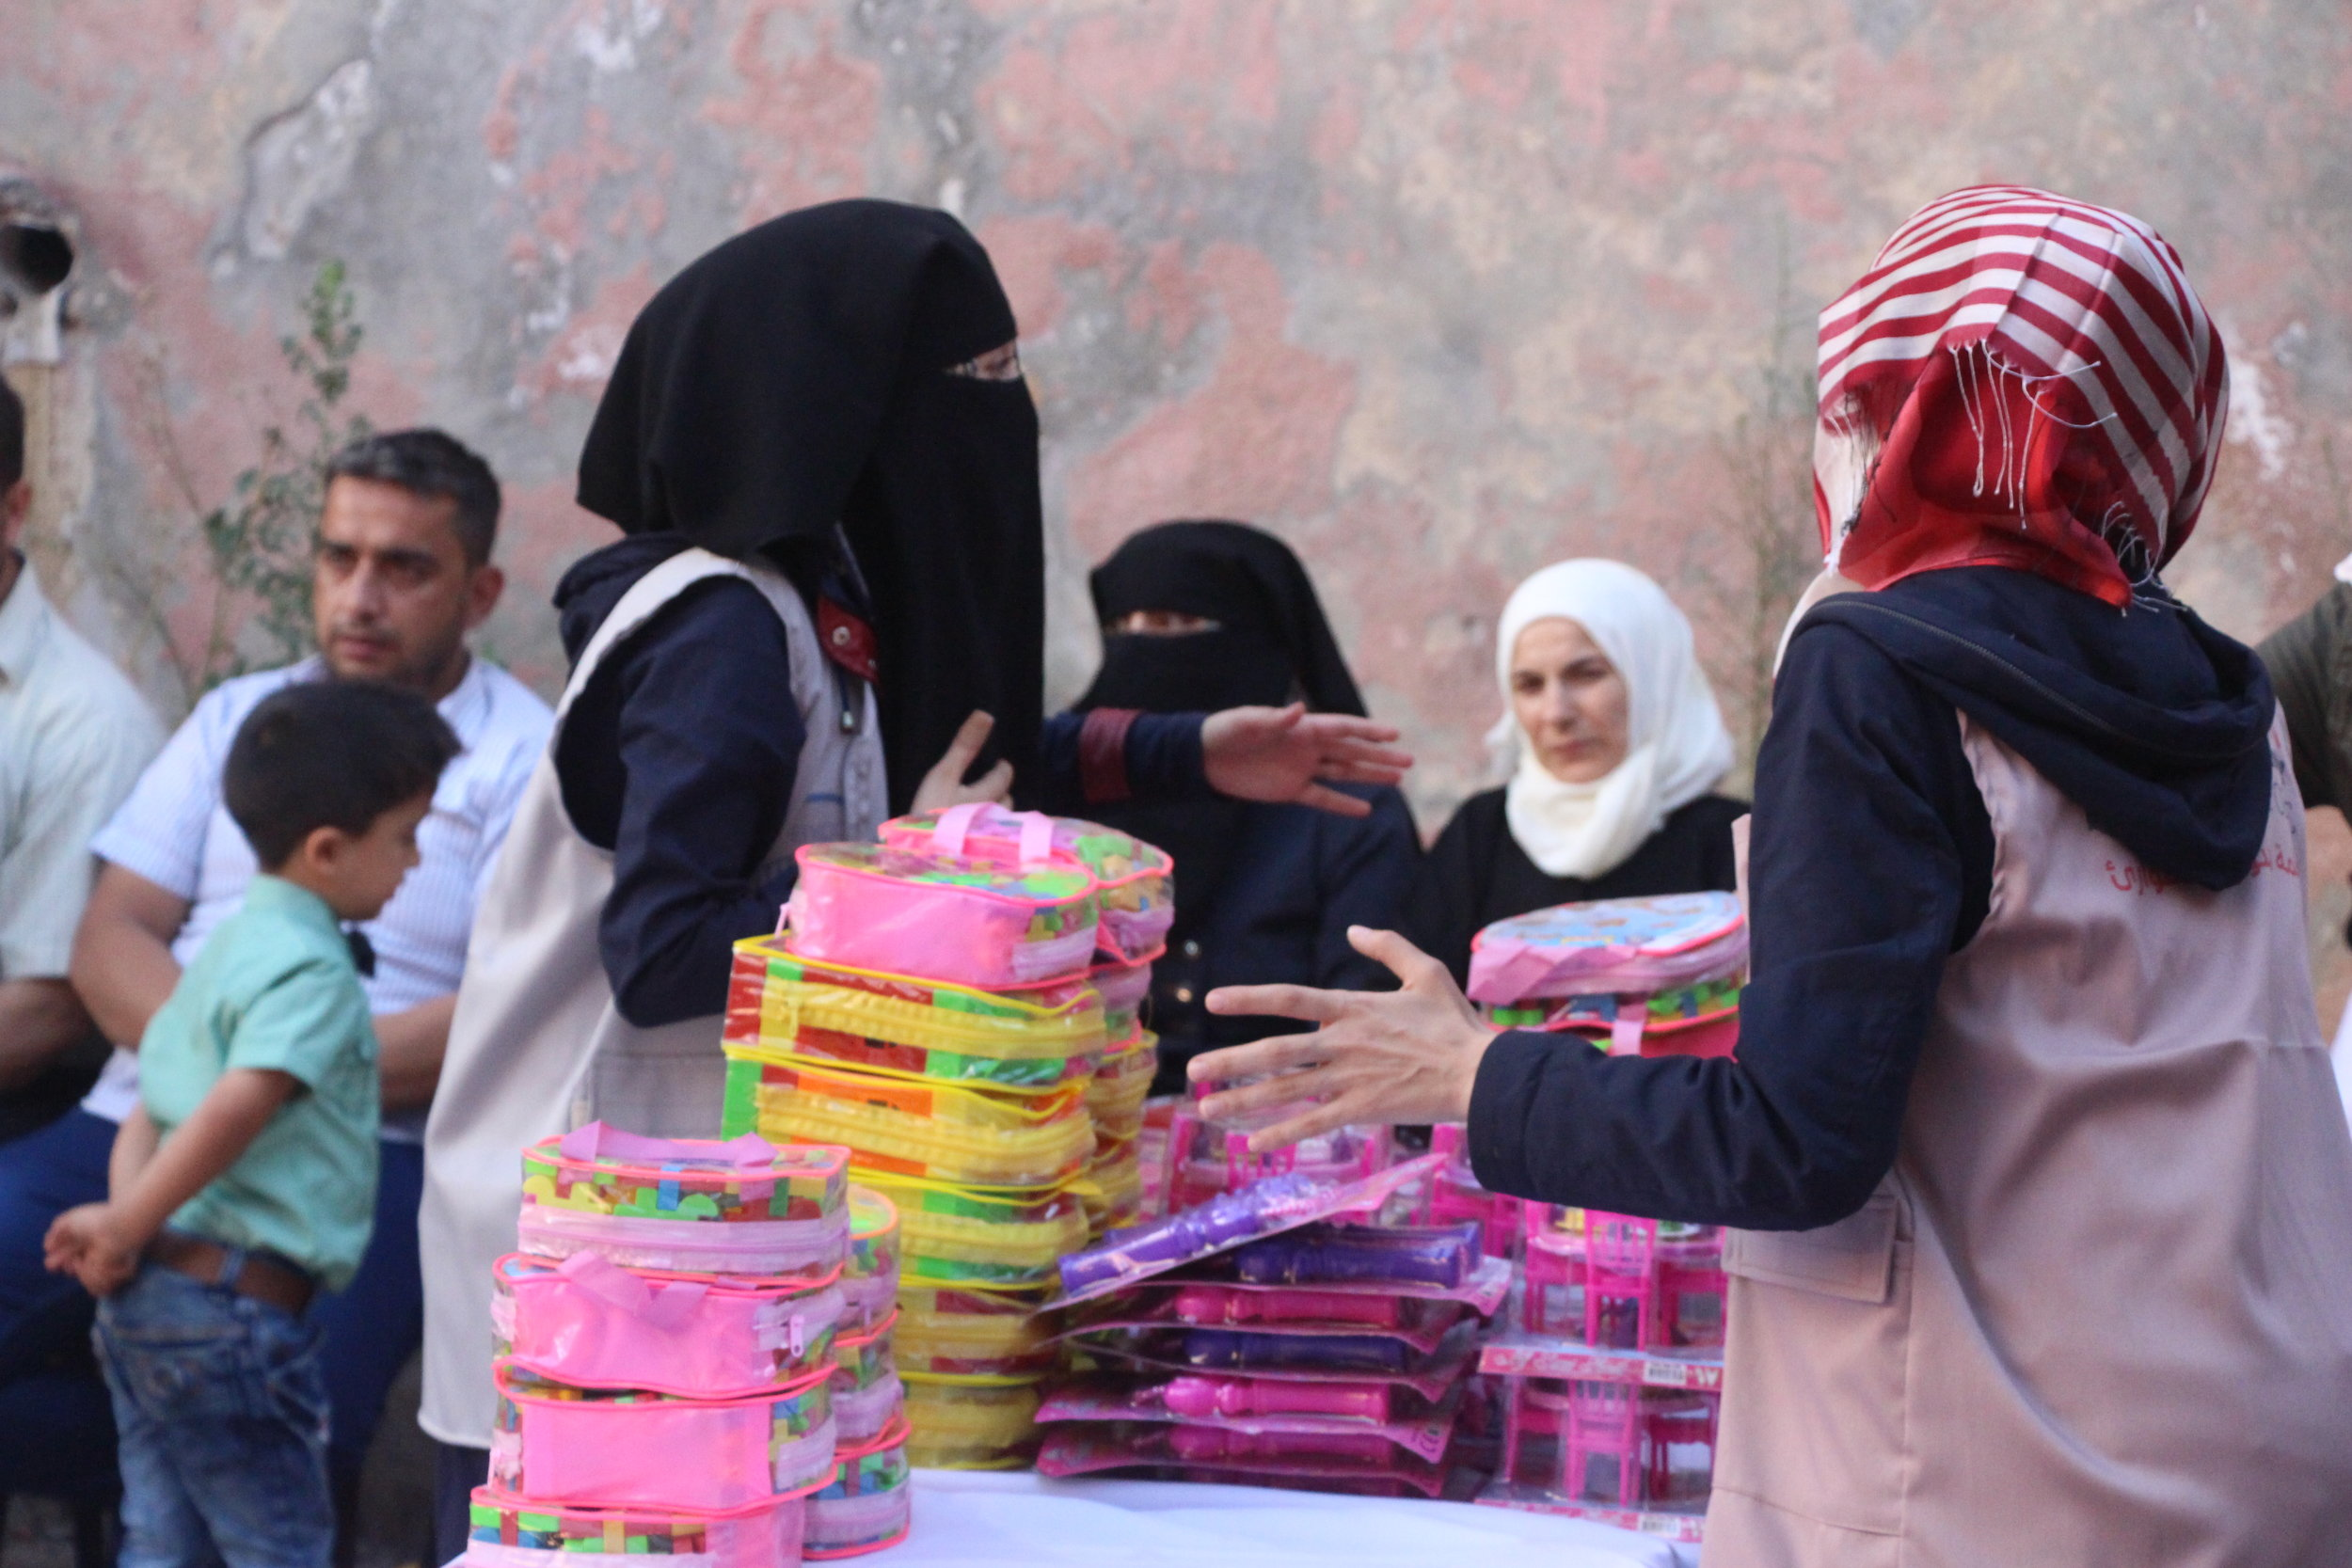 G ifts and Food for all!   At the Eid celebration, gifts and toys were given to each child- one of the most exciting joys of the holiday!  SETF also provided families with enough meat to last an entire month. 14 lambs and one cow provide nourishment to hundreds of families in Idlib.